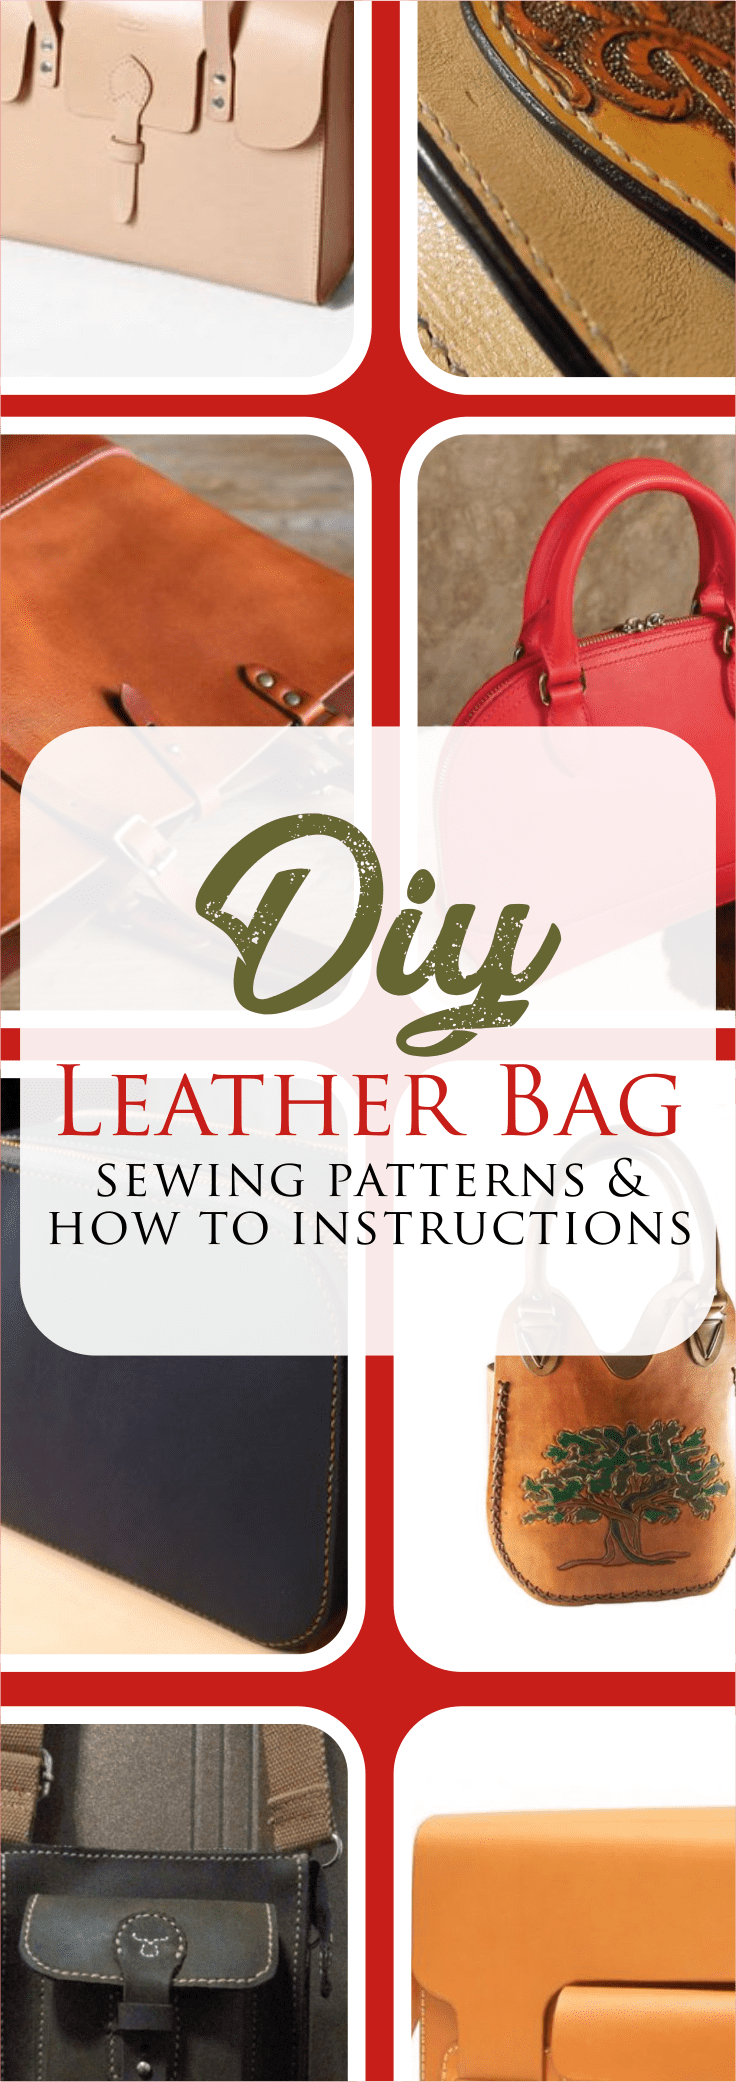 How to Make a Leather Bag Patterns